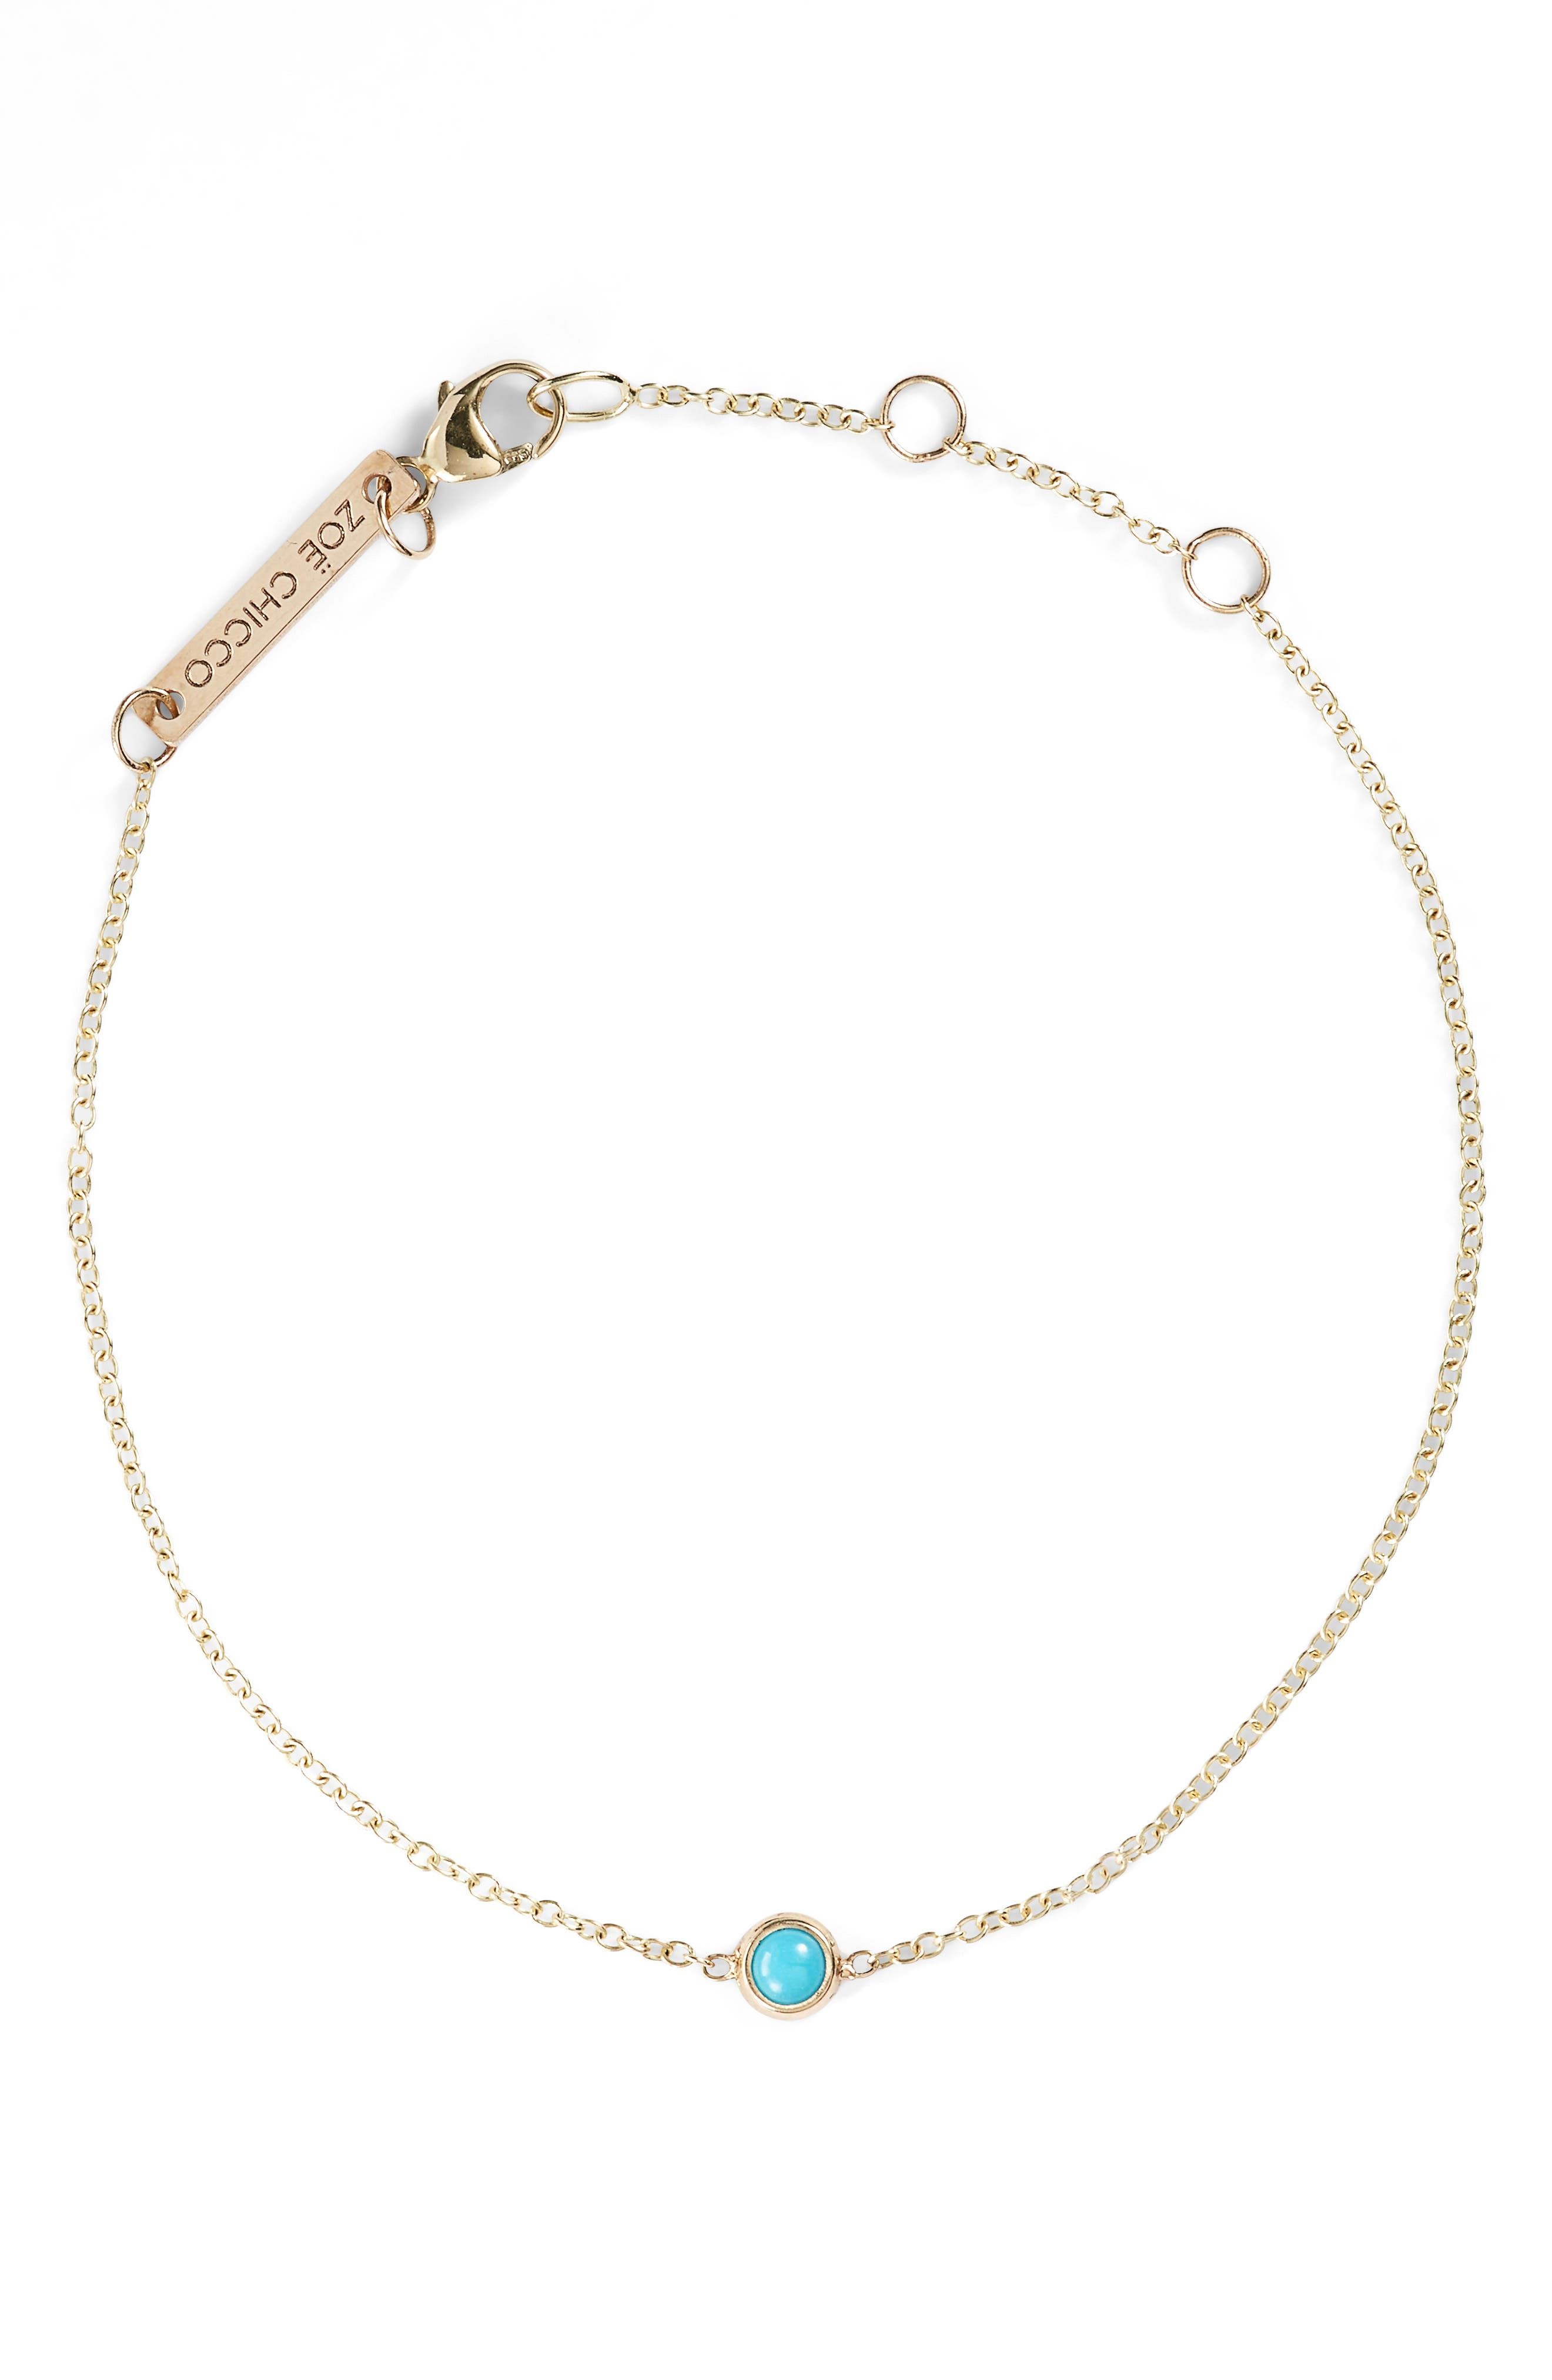 Turquoise Bezel Line Bracelet,                             Main thumbnail 1, color,                             Yellow Gold/ Turquoise